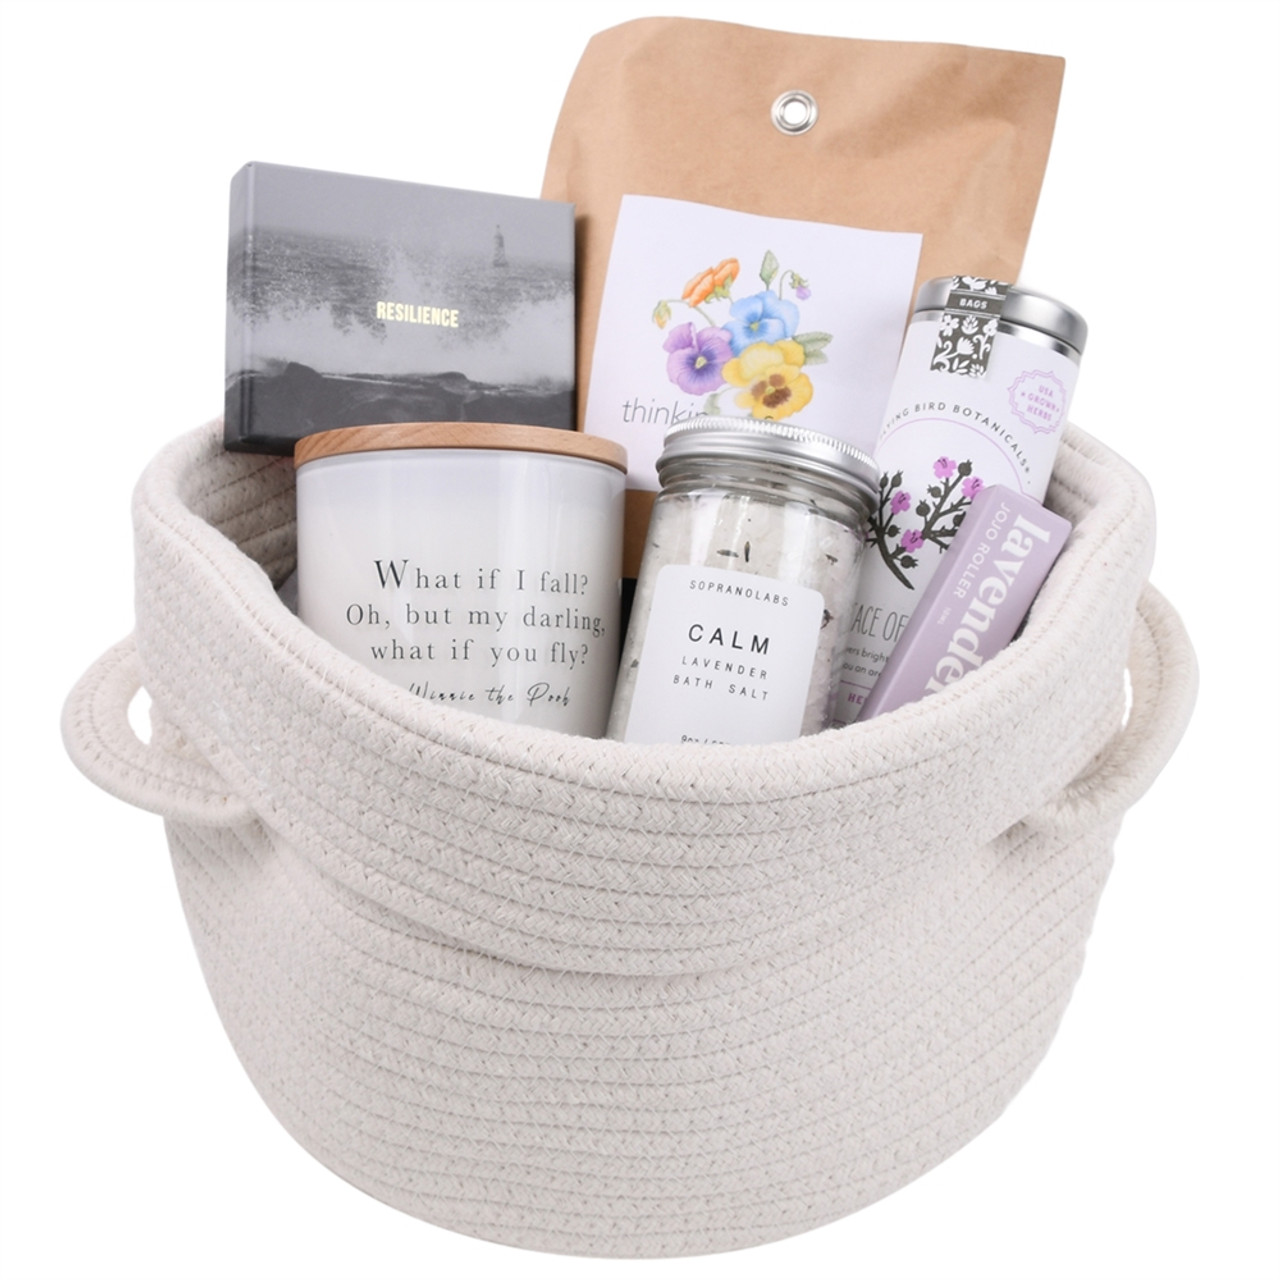 Thinking of You Gift Basket - Thoughtfully Yours